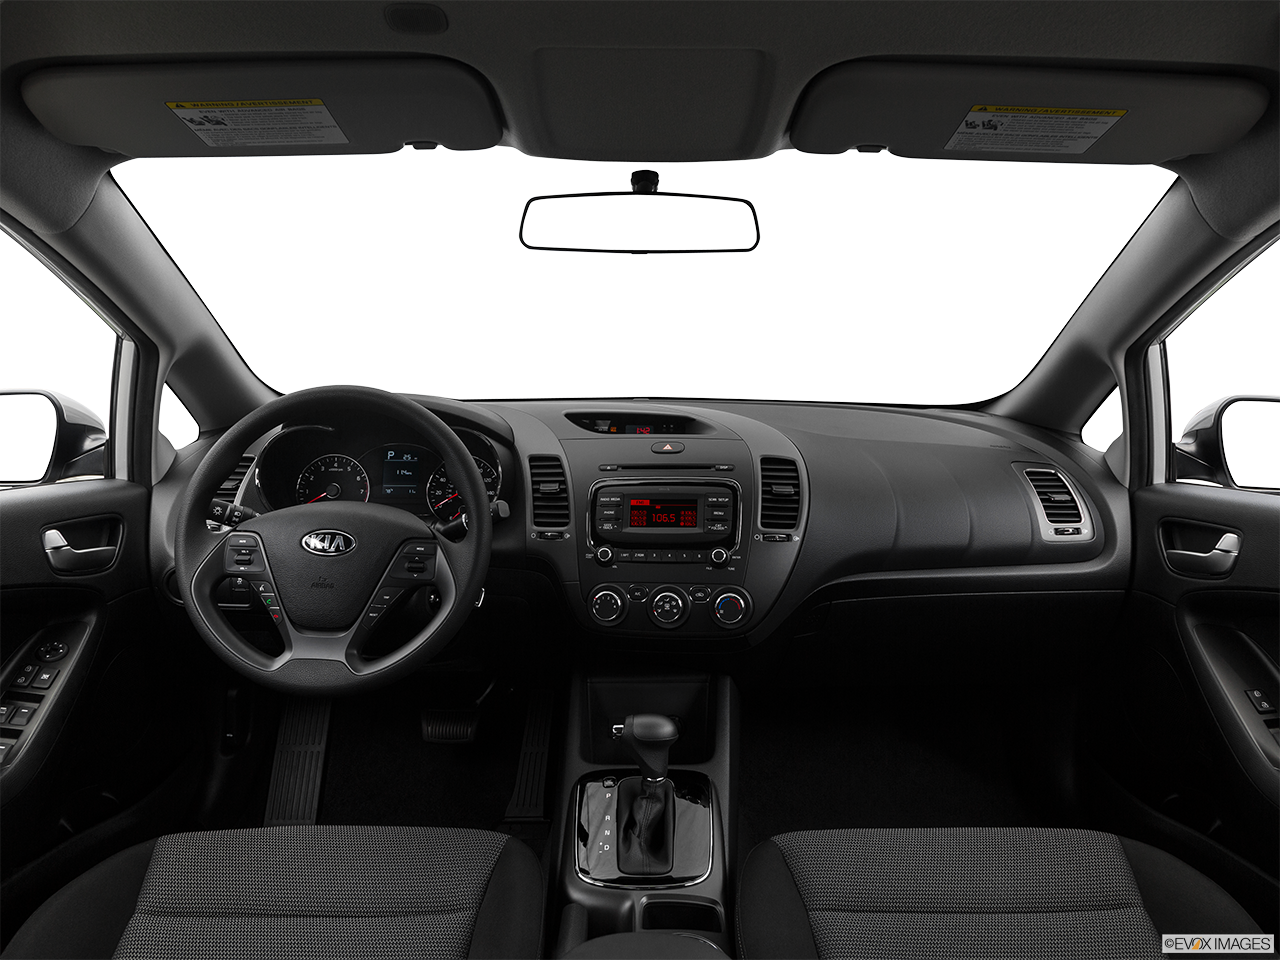 Interior View Of 2017 KIA Forte at KIA Cerritos